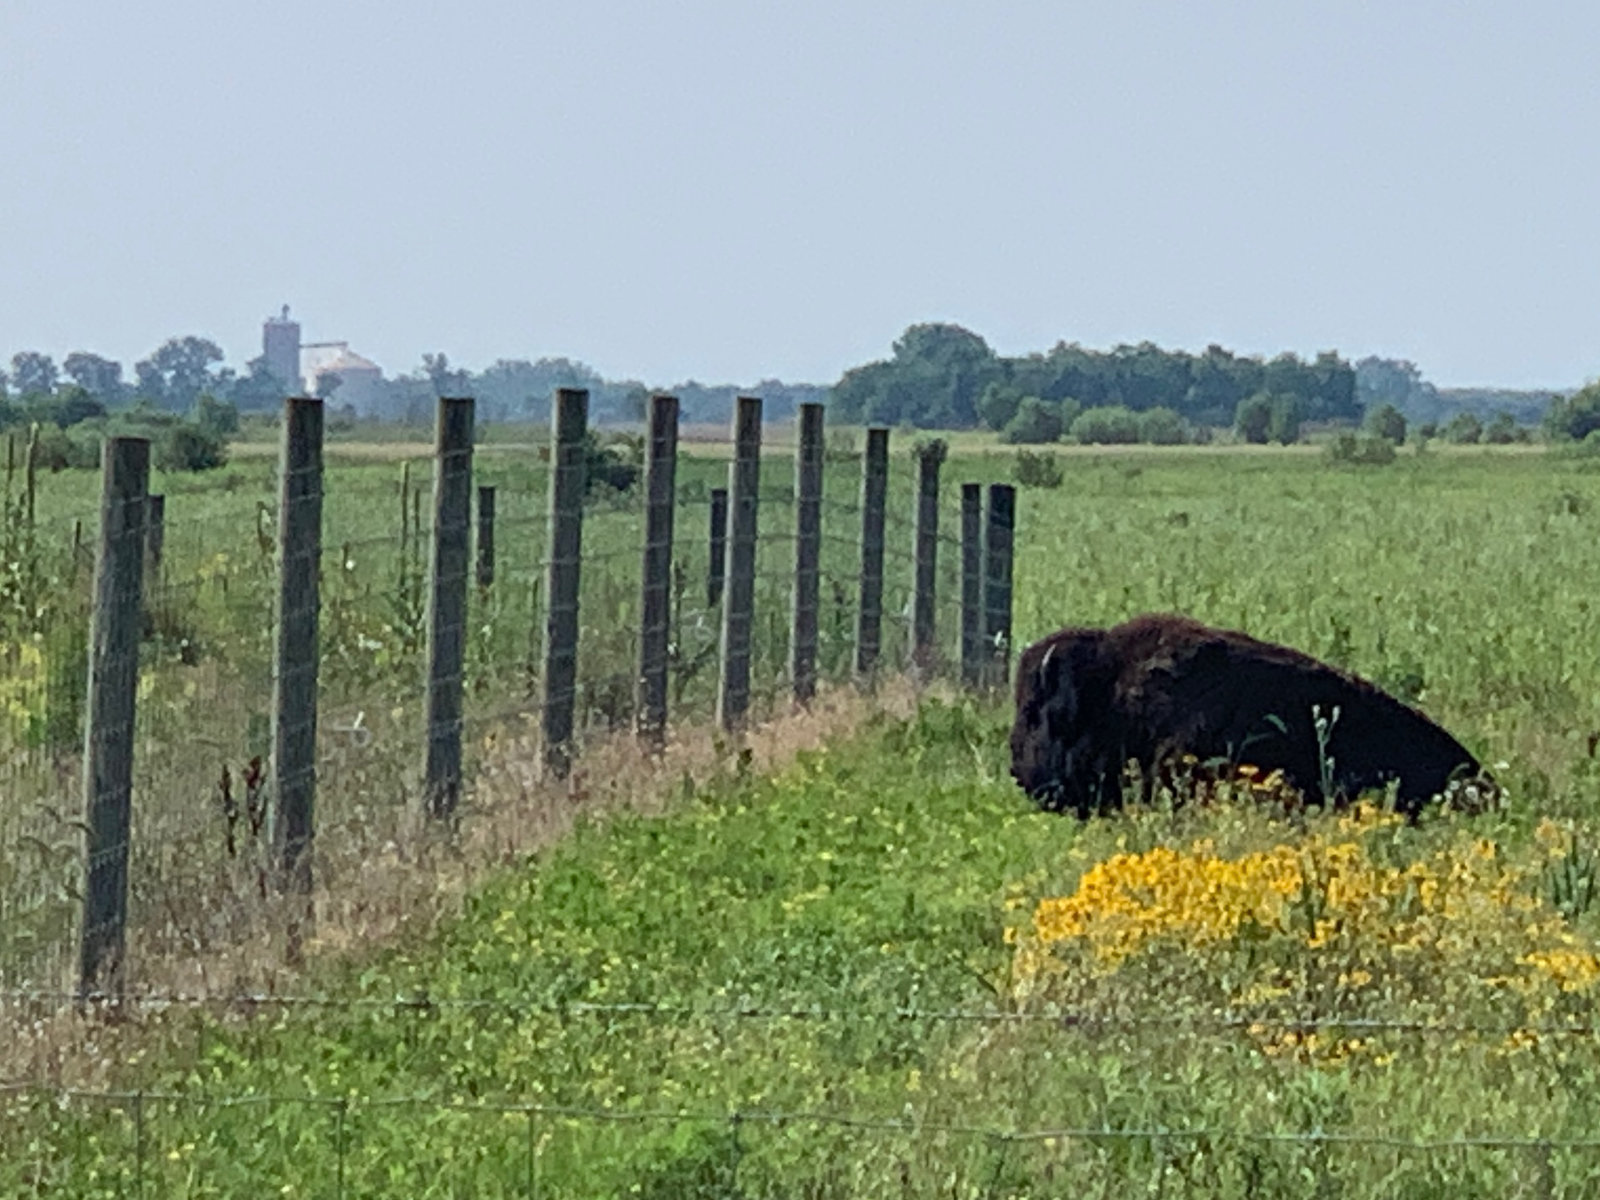 The national mammal of USA in Kankakee Sands